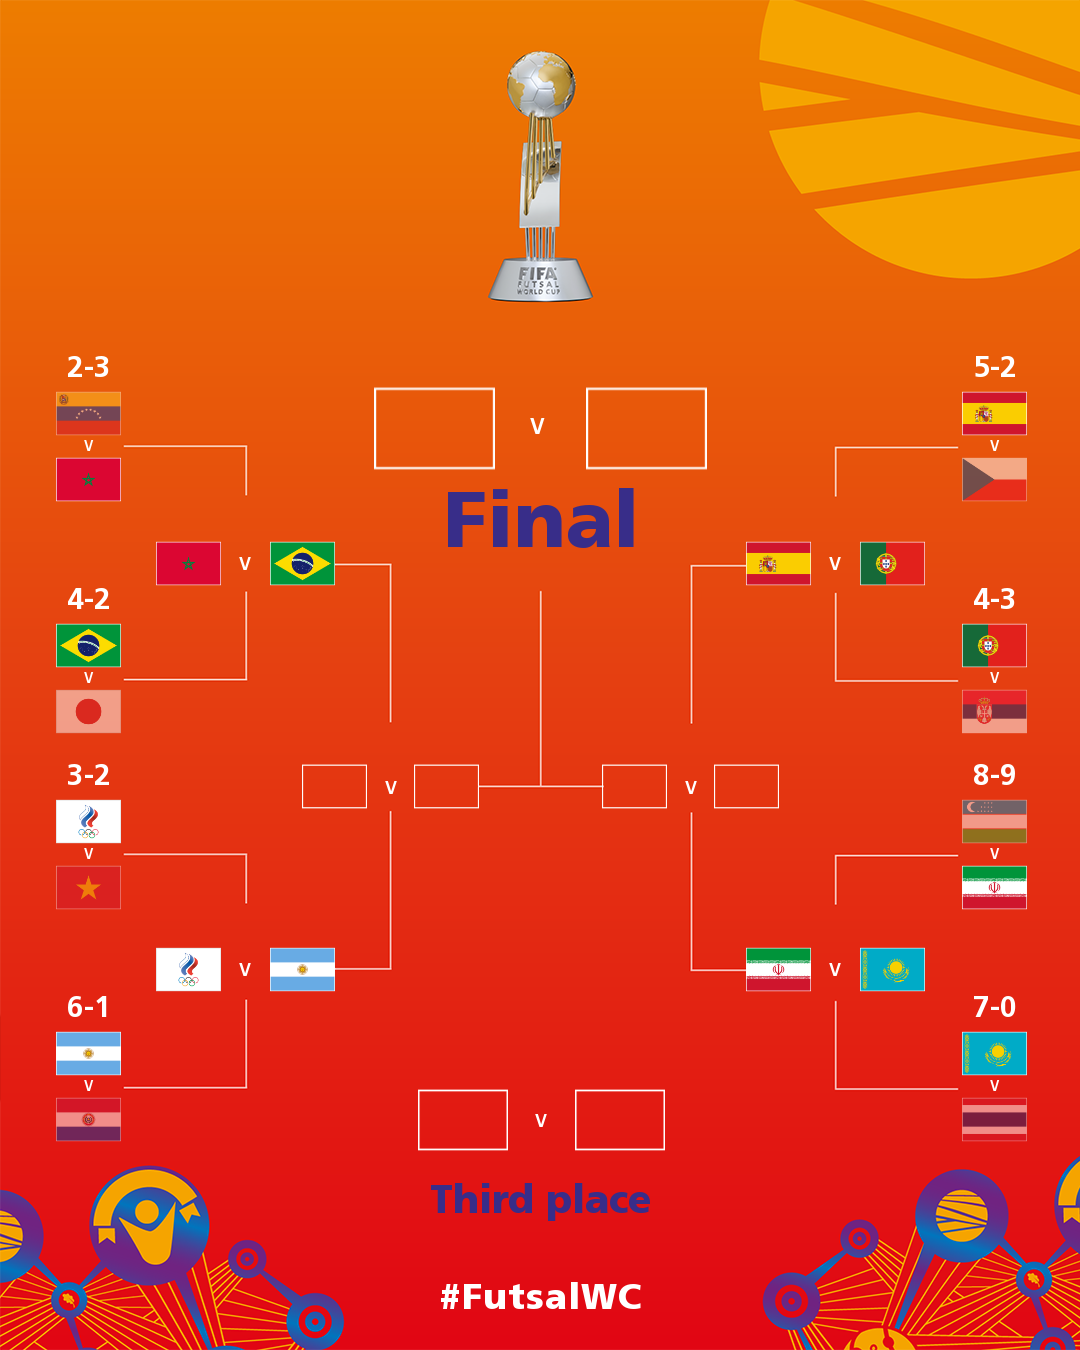 Futsal World Cup results: Iran represents Asia in the quarterfinals, adding a 'great war' Spain vs Portugal 3